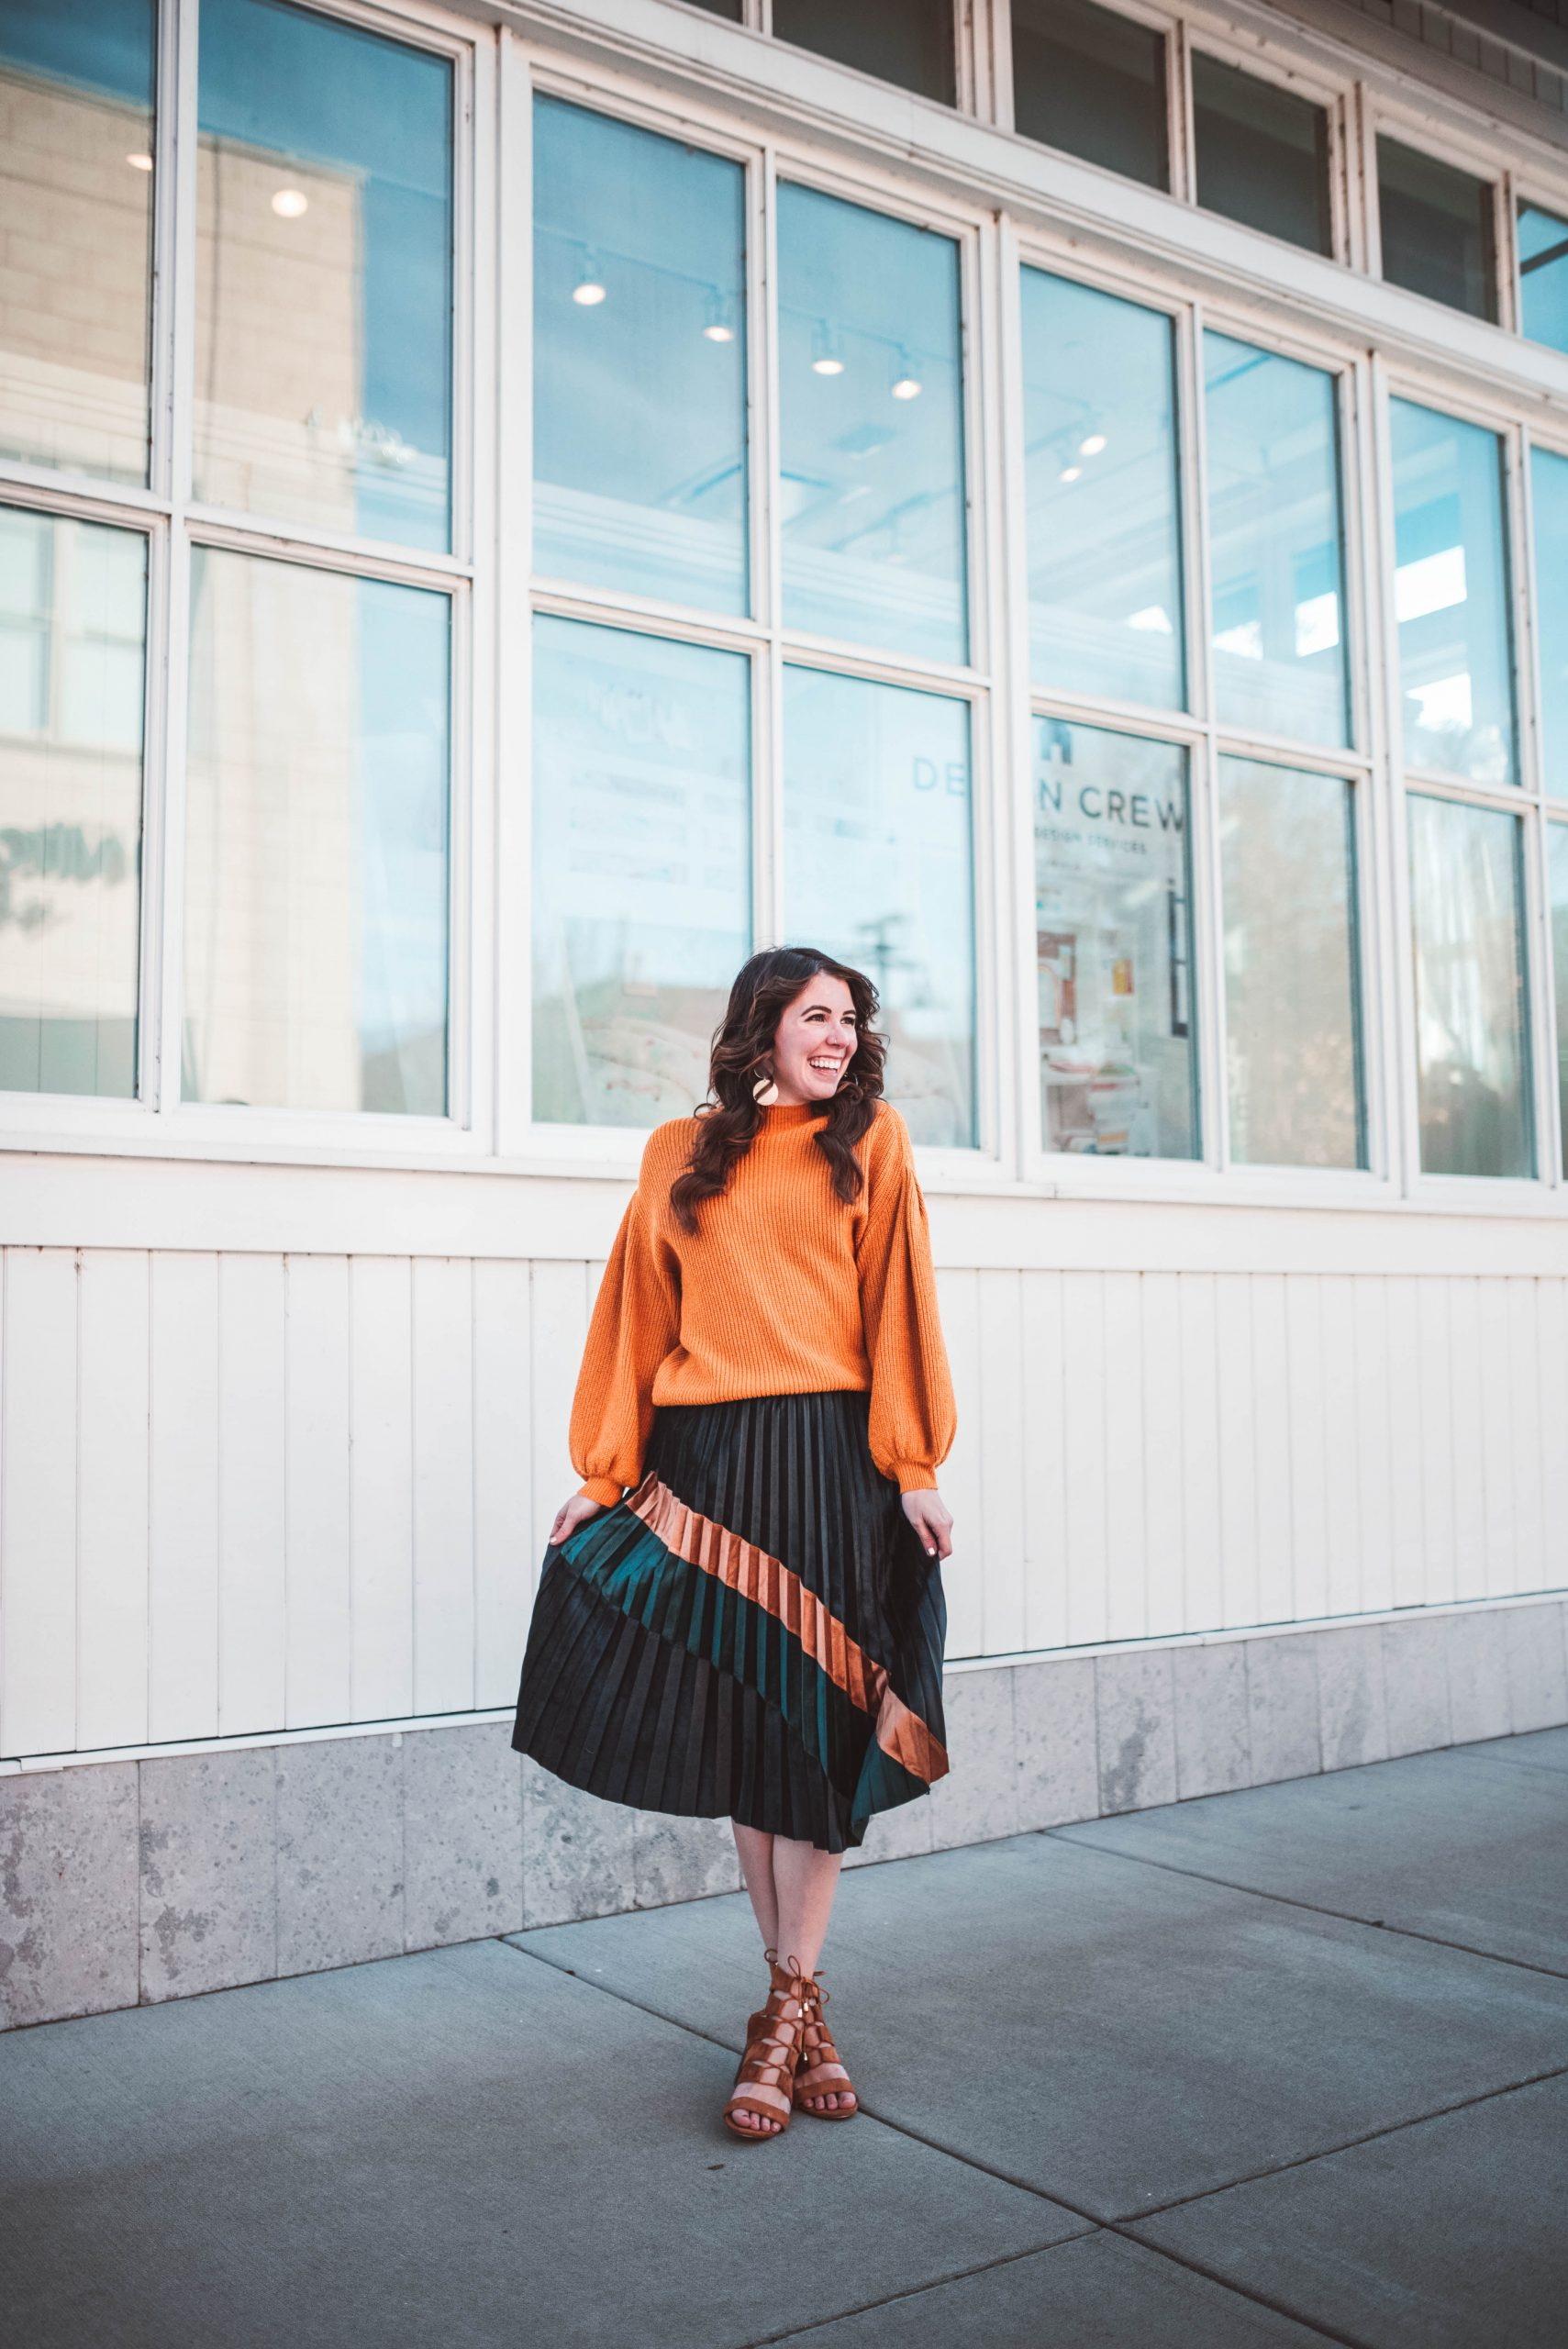 Cold Weather Party Outfit by popular Nashville fashion blogger, Greta Hollar: image of a woman wearing a Chic Wish Bronze and Emerald Color Splicing Velvet Pleated Skirt, Revolve Turtleneck Cable Knit Pullover Sweater, and Milanoo Brown Gladiator Sandals Suede Open Toe Lace Up Ankle Strap Sandals High Heel Sandal Shoes.